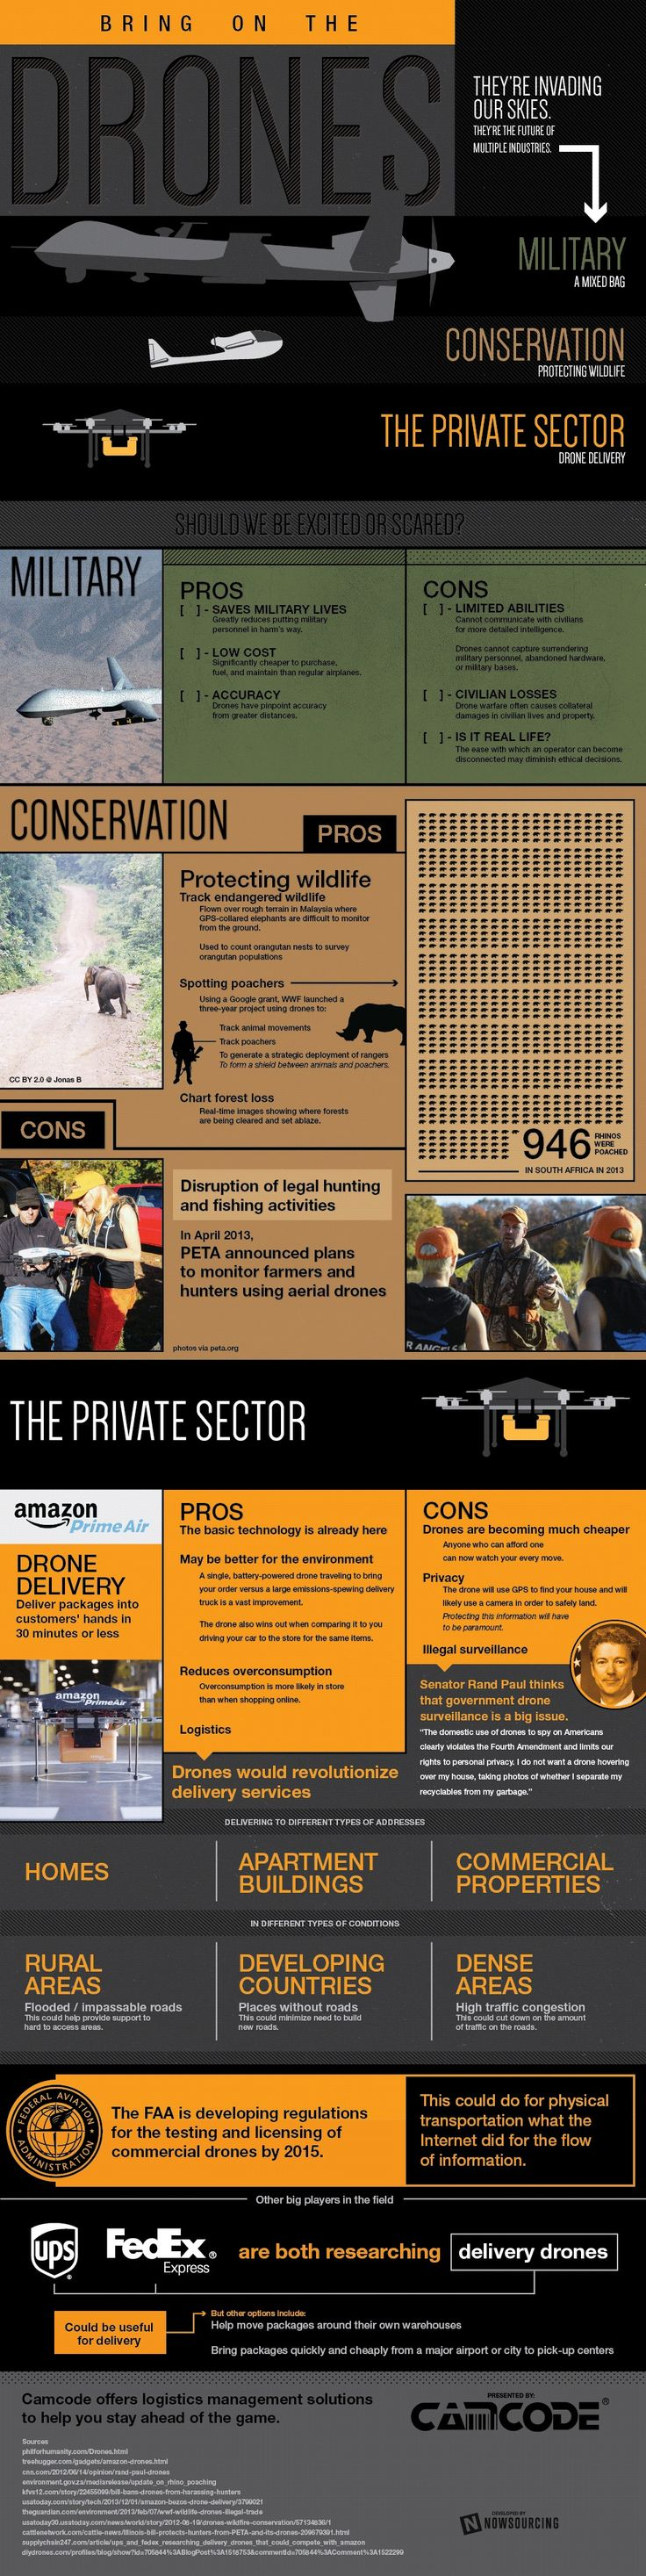 Should We Be Scared or Excited About Drones? [INFOGRAPHIC] - dashburst.com/...